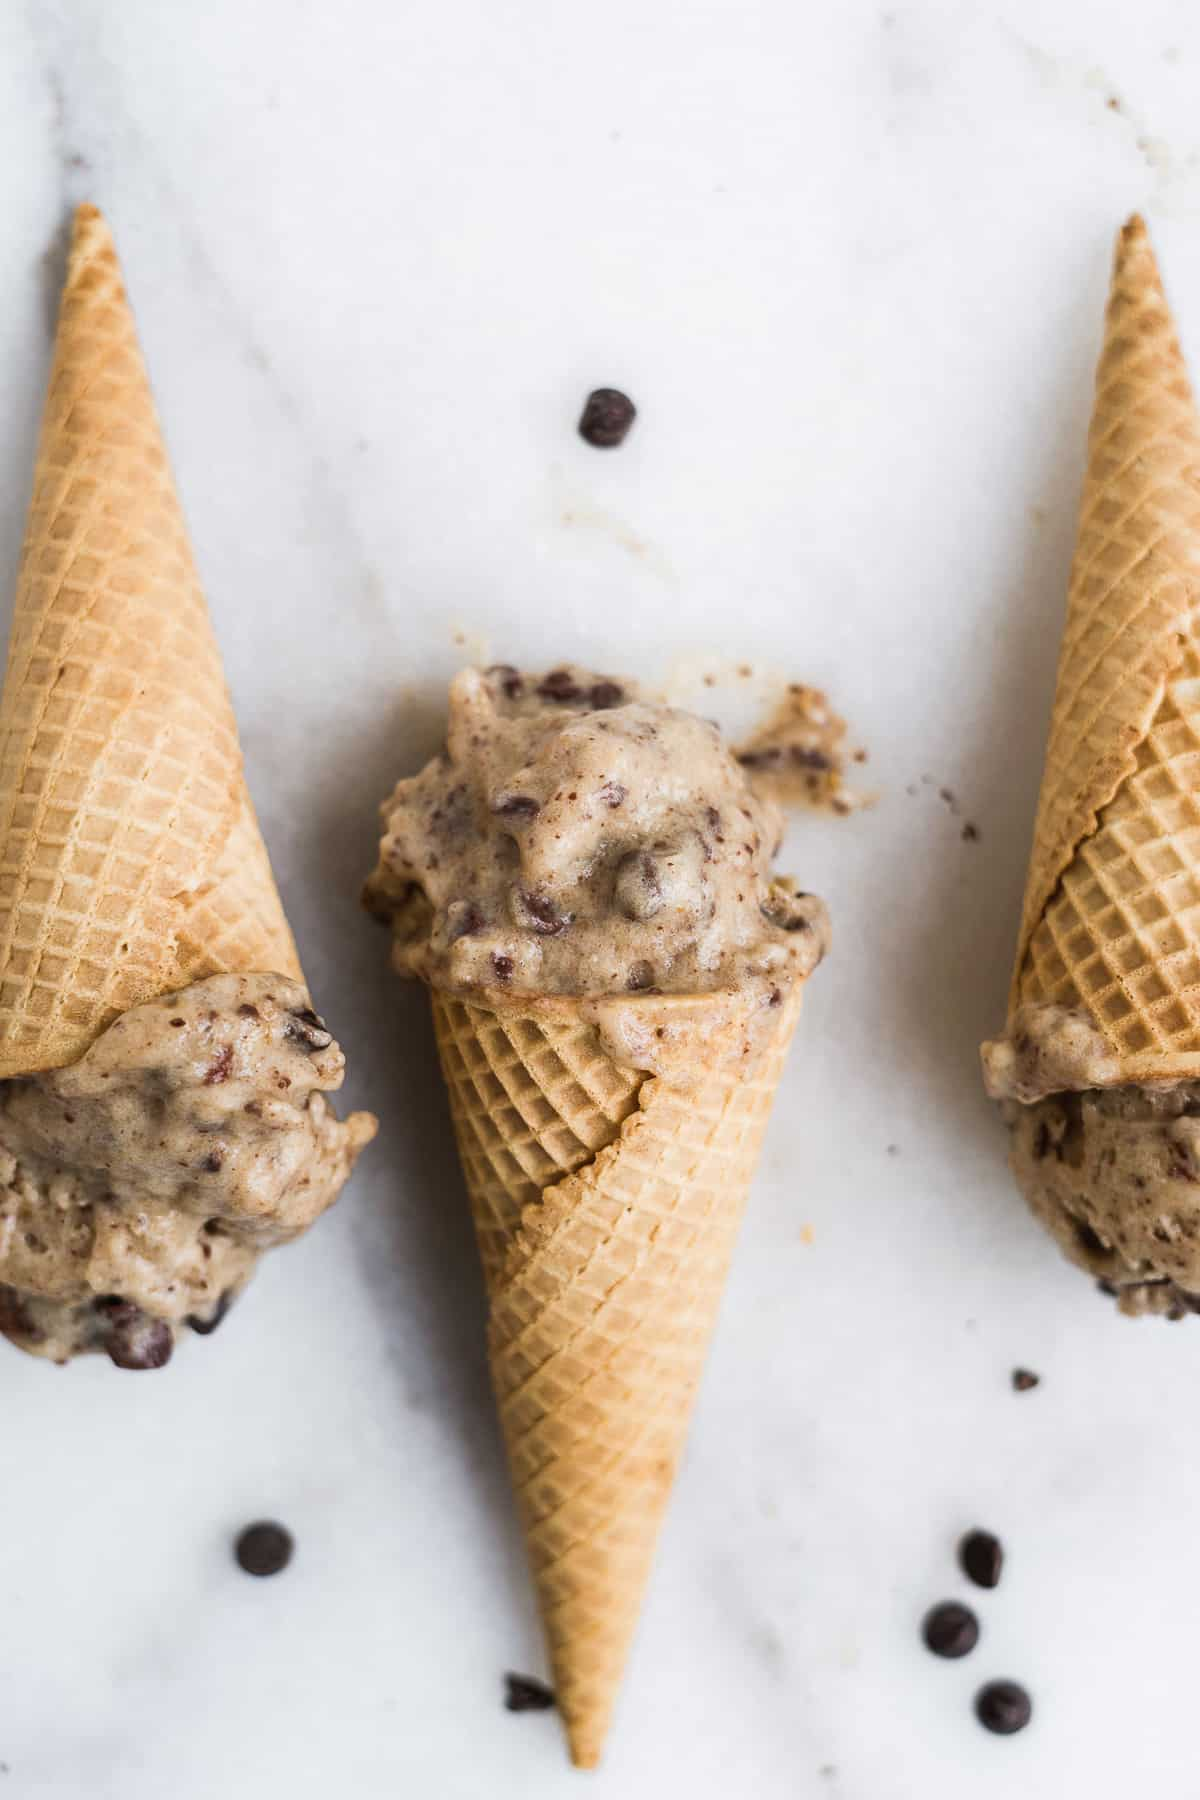 Ice cream cones laying on a marble surface with banana ice cream.